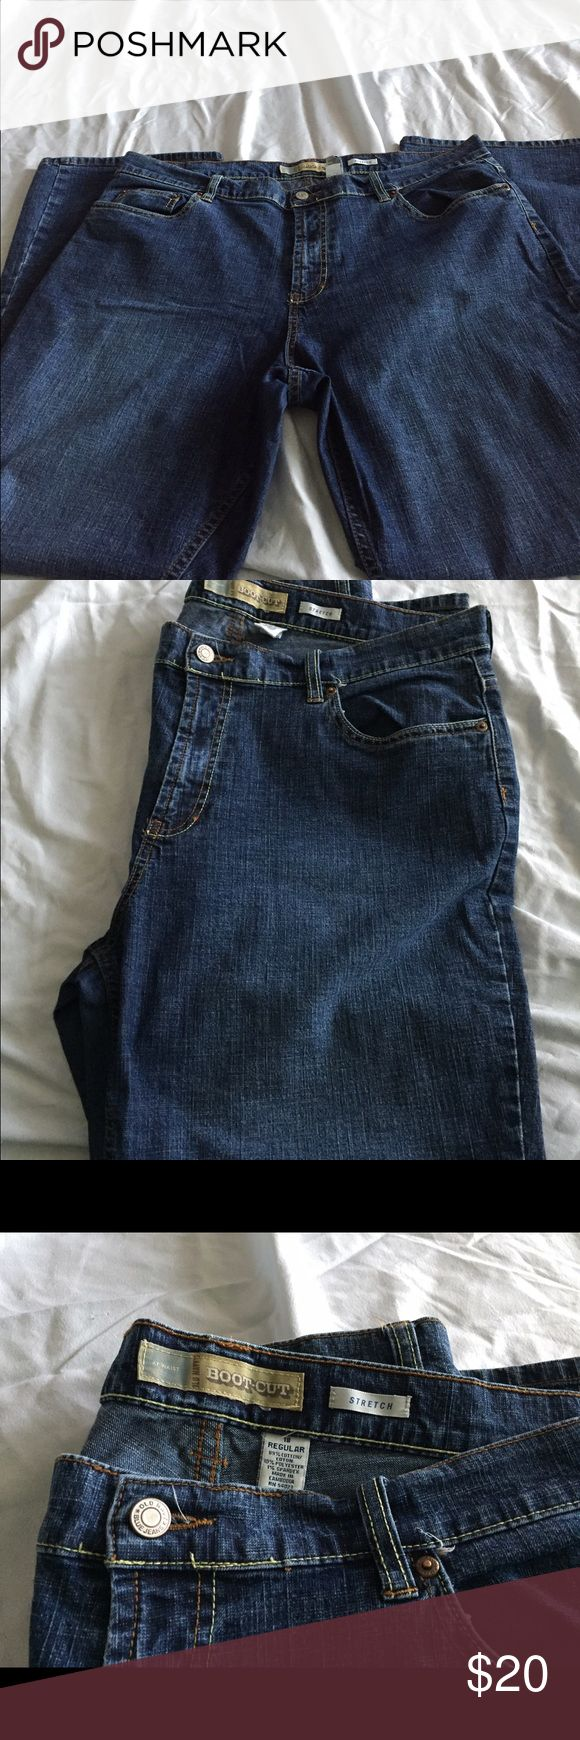 Old Navy Stretch Jeans Old Navy Denim Stretch Jeans Old Navy Jeans Flare & Wide Leg